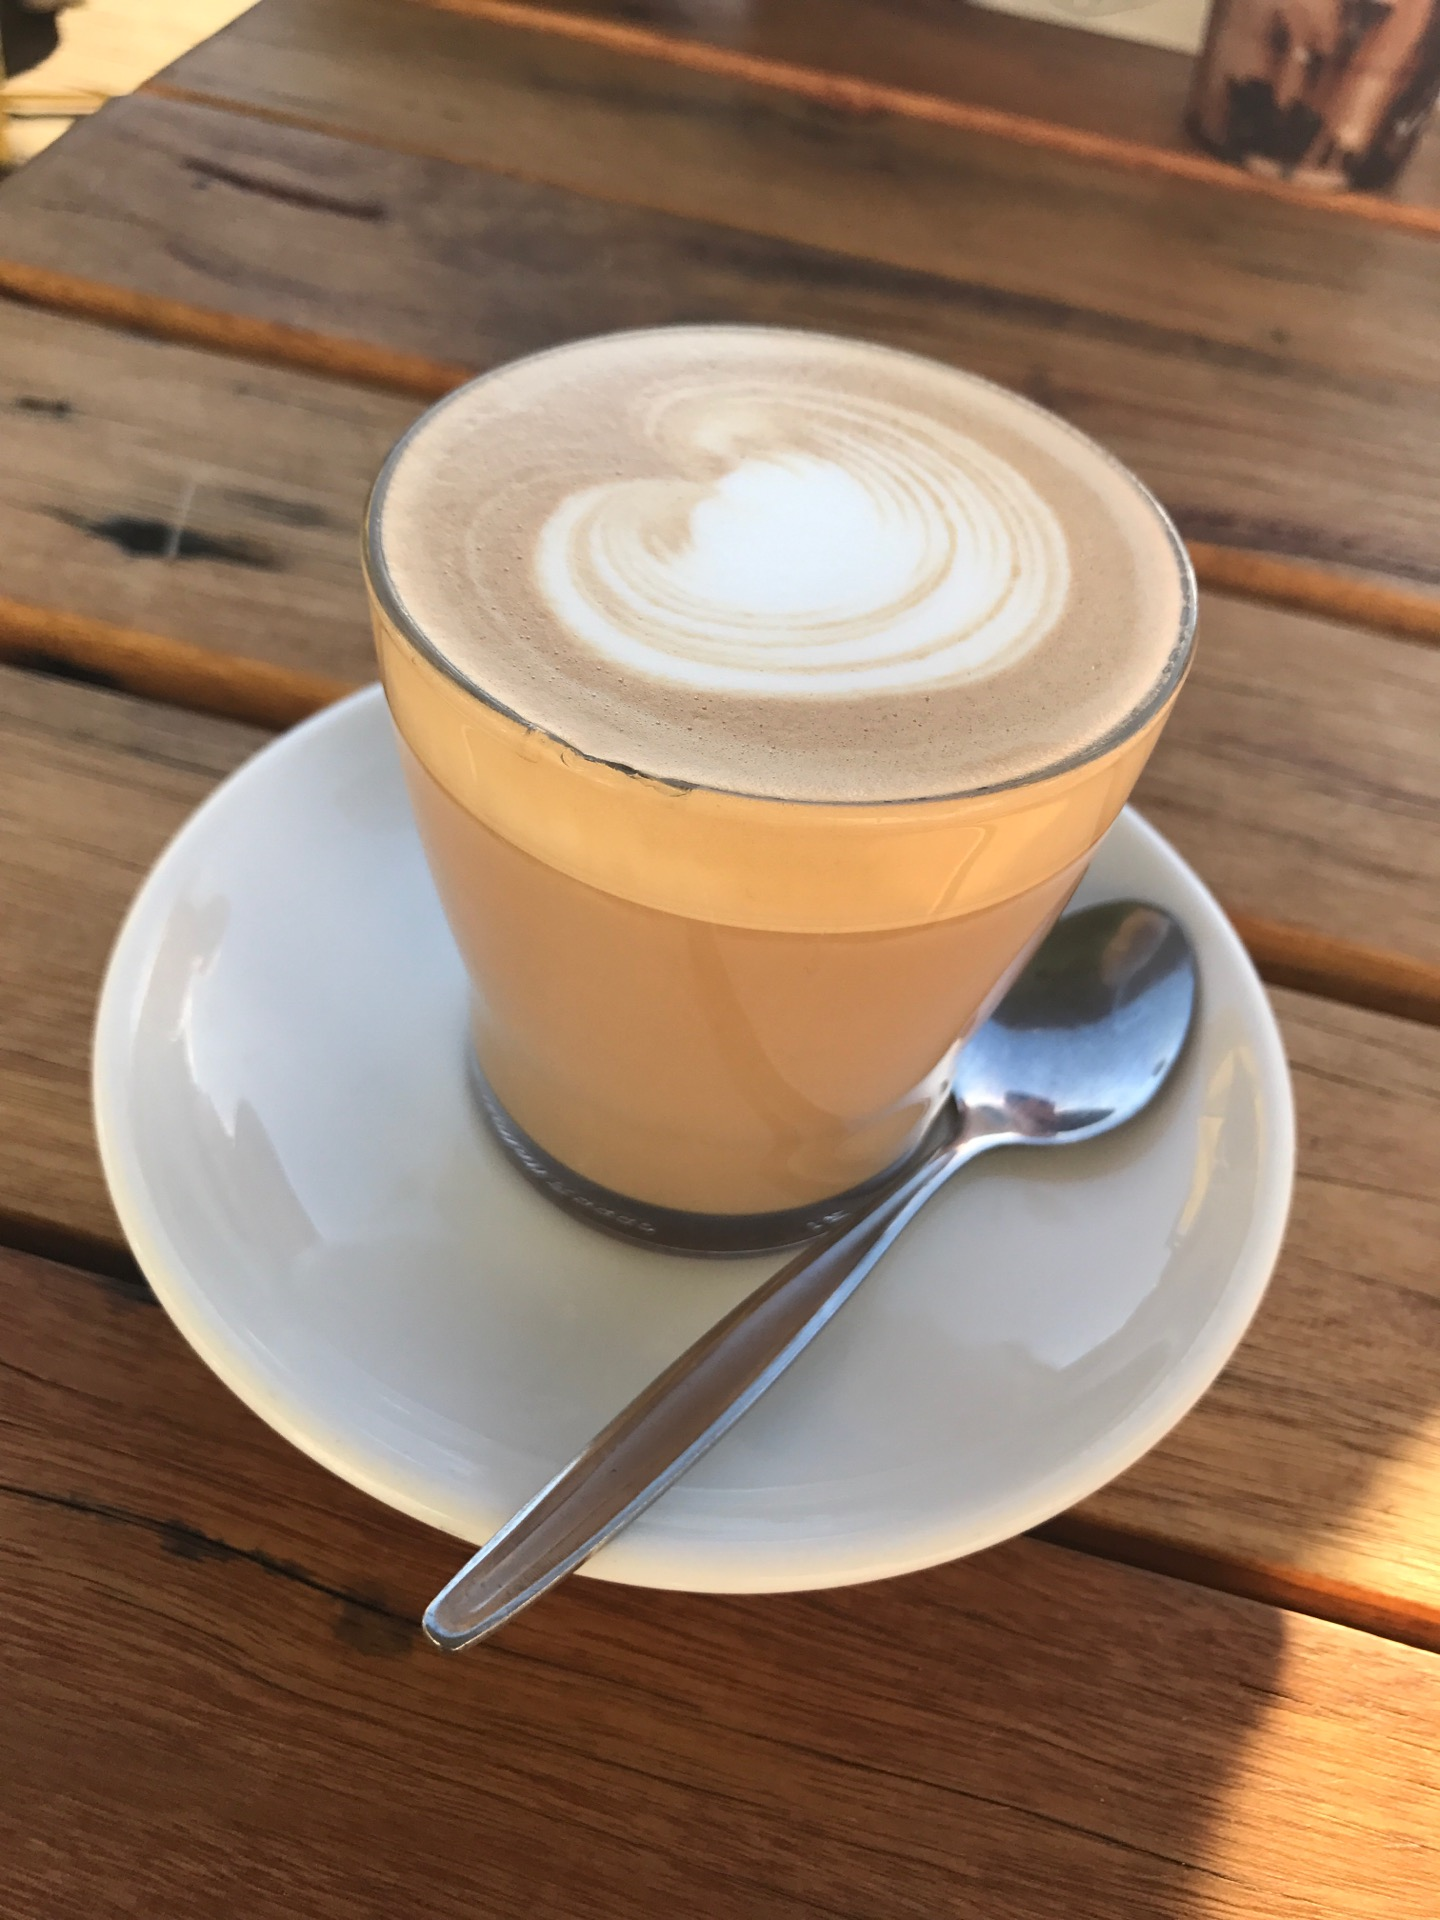 The Swing Bridge Cafe And Boathouse   30 GREAT OCEAN Road, Lorne, Victoria 3232   +61 423 814 770